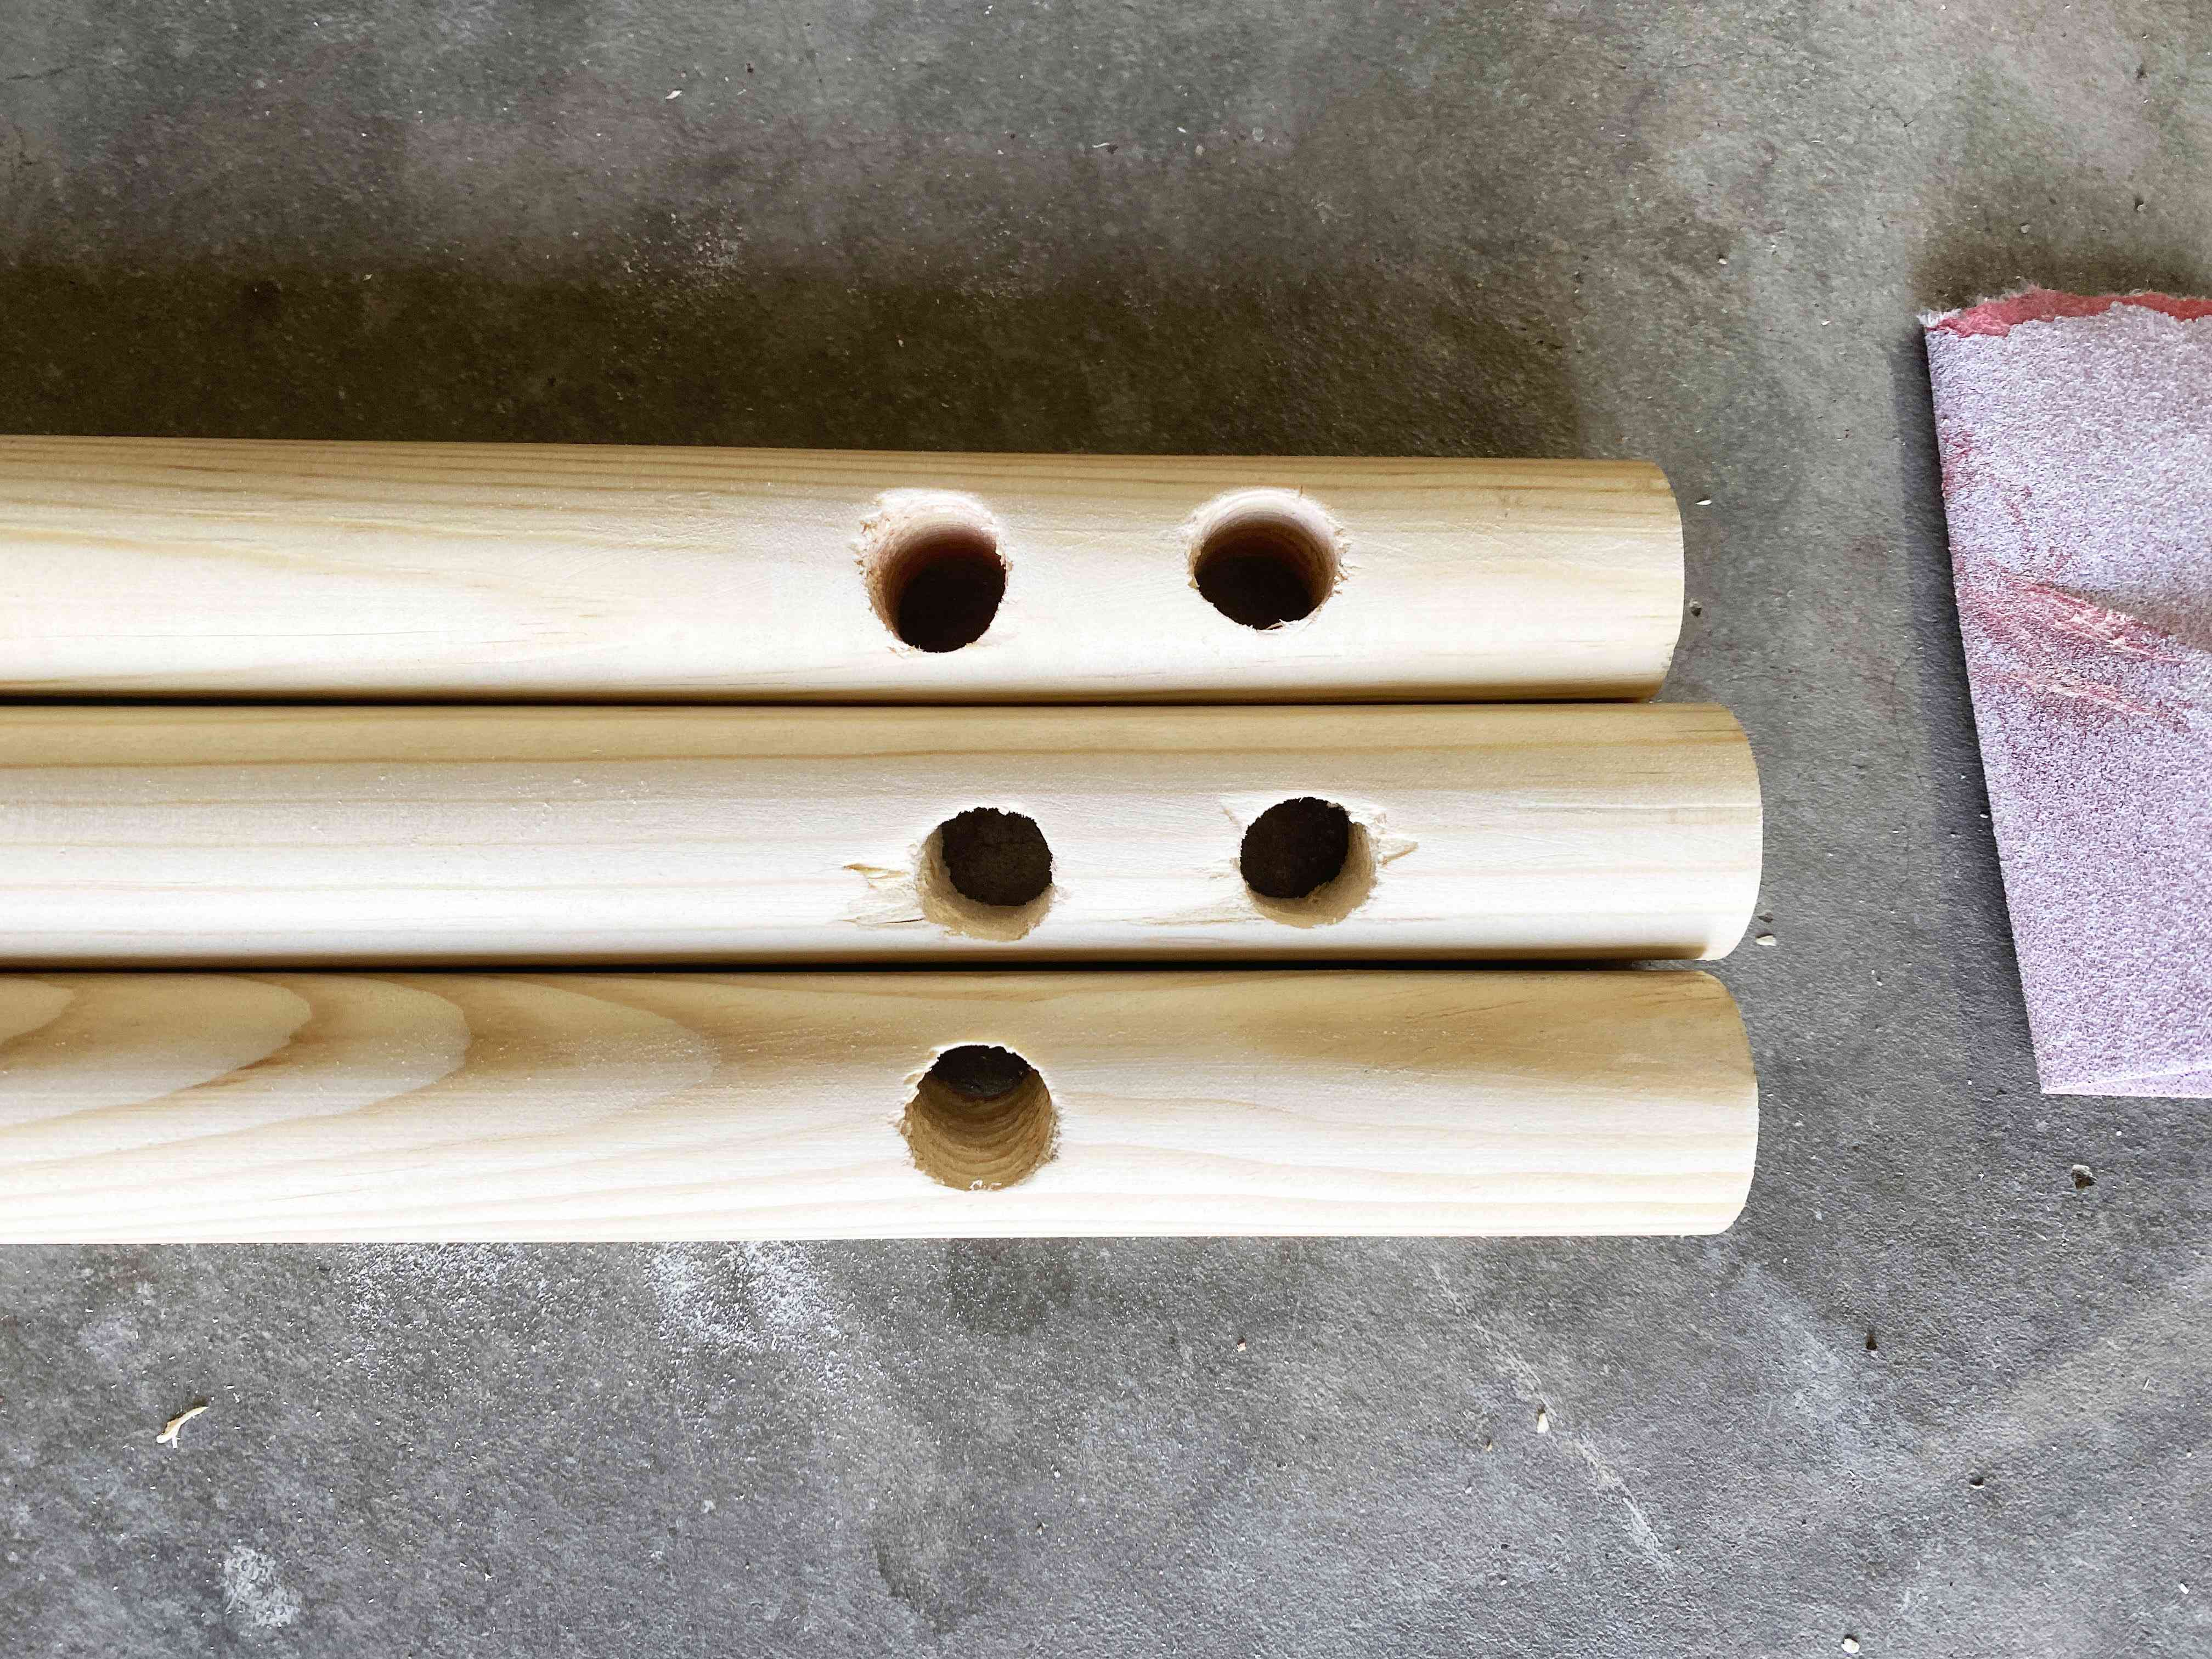 Dowel rods with holes drilled in them